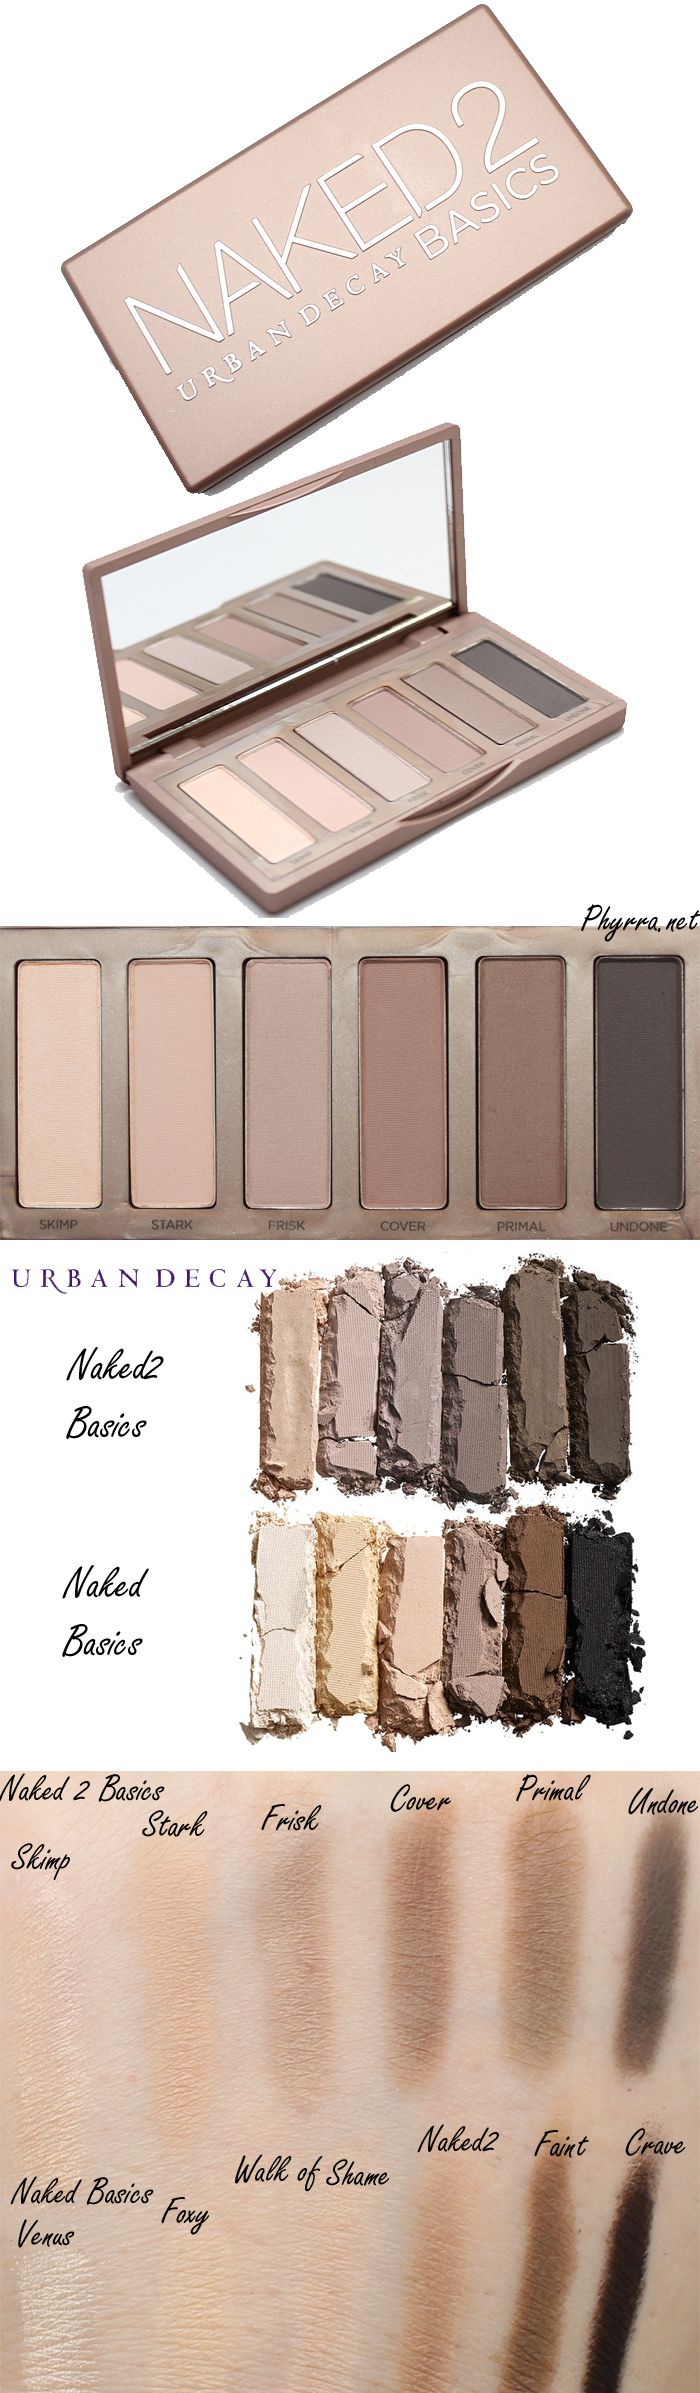 Urban Decay Naked 2 Basics compared to the Naked Basics Palette!   #crueltyfree #urbandecay #eyeshadow